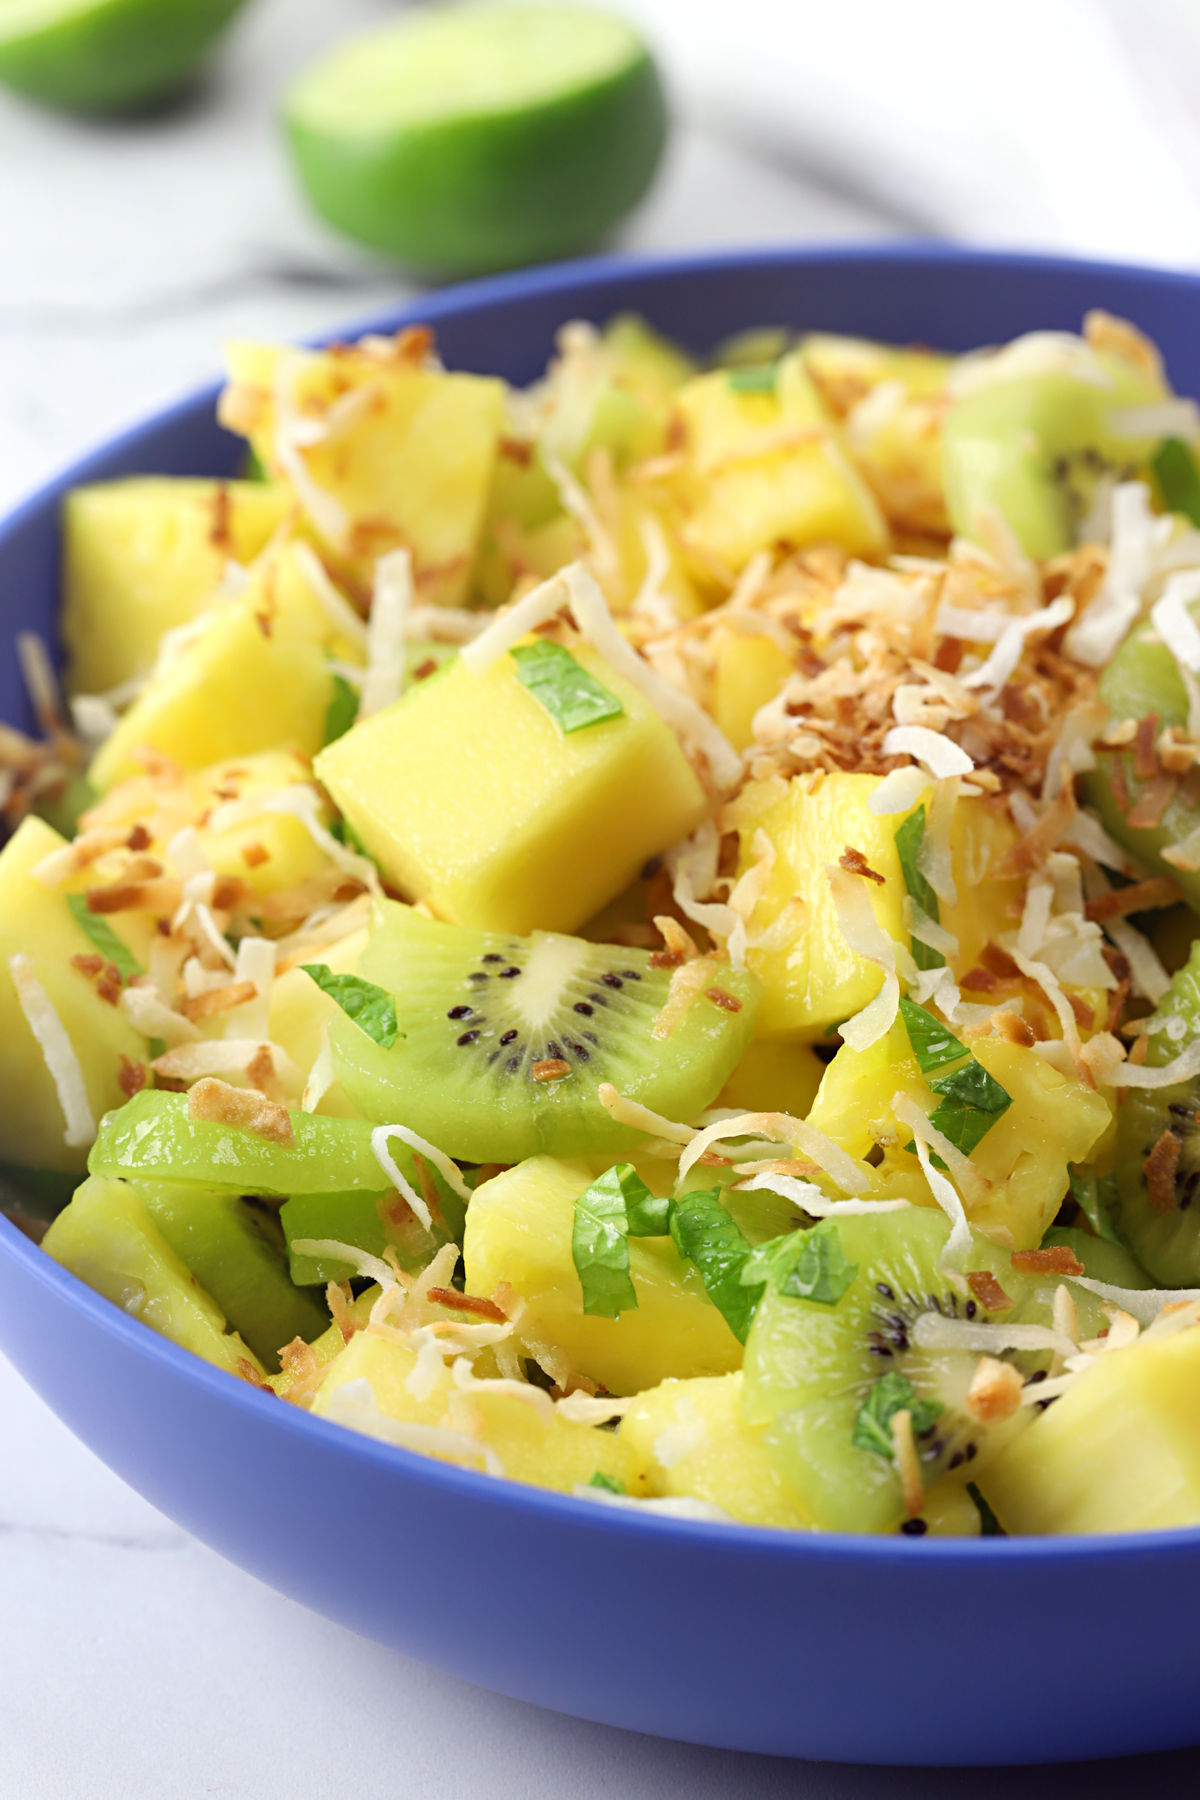 Pineapple kiwi salad in a blue bowl topped with toasted coconut.